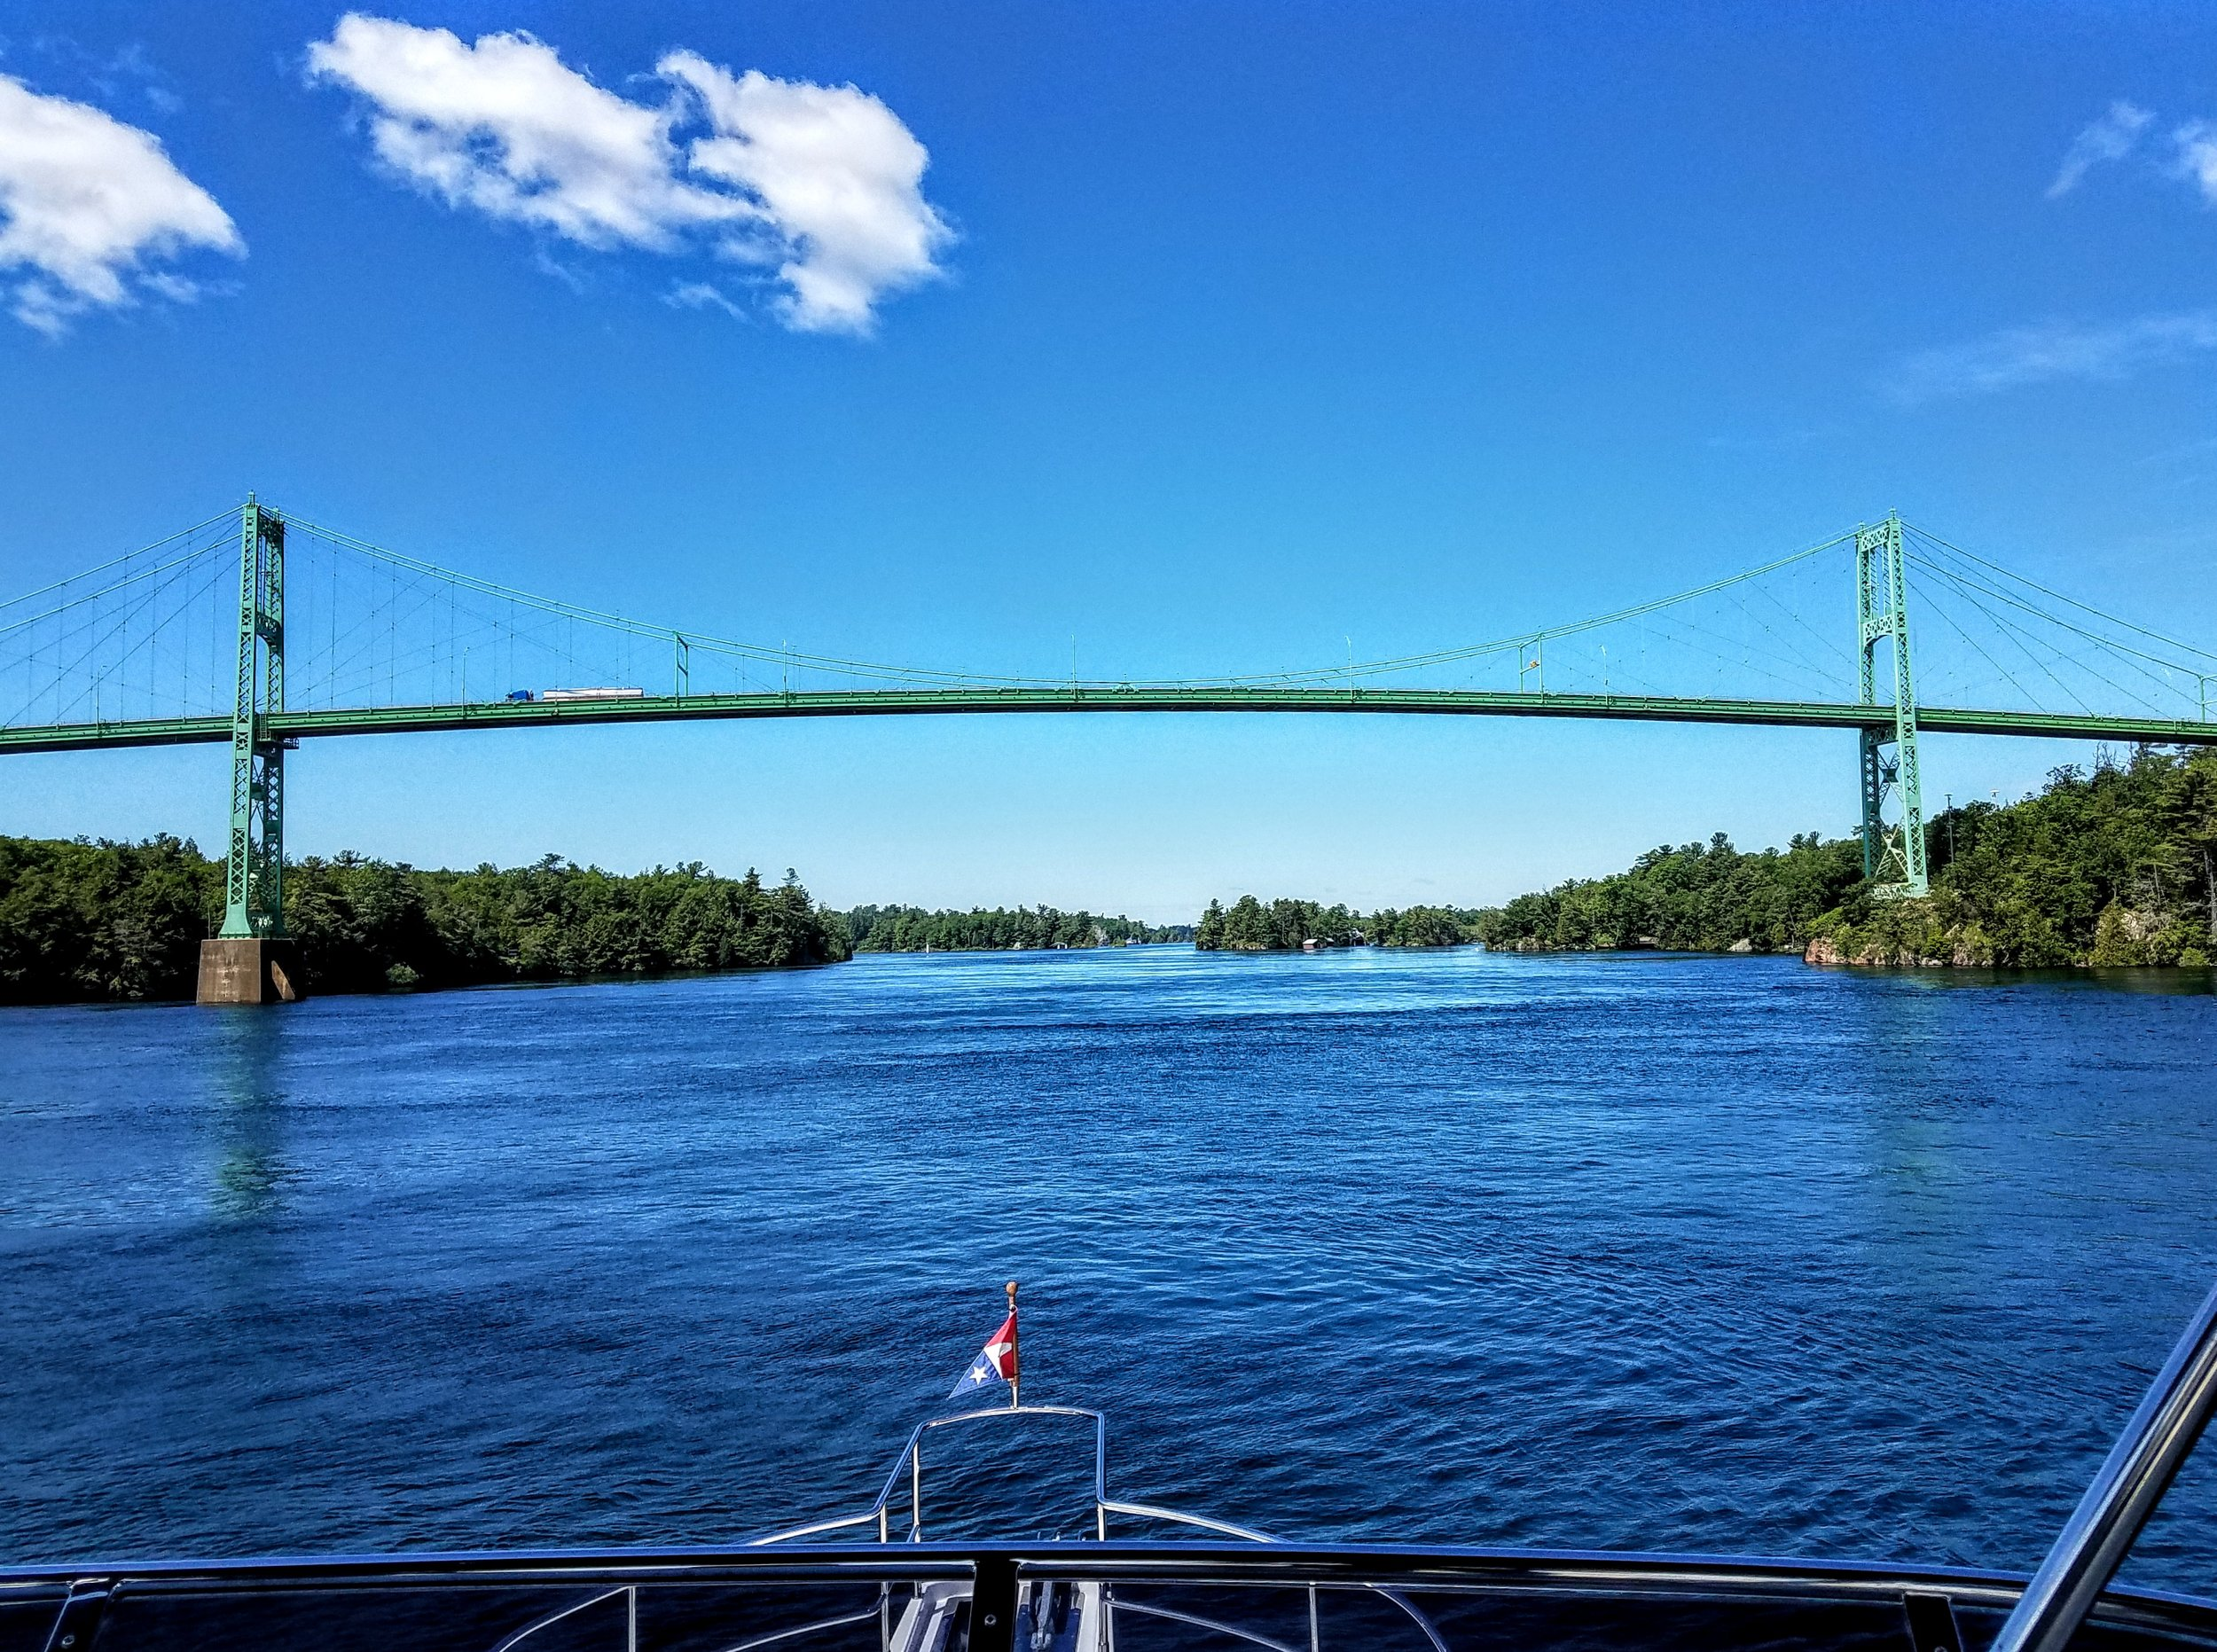 Entering International waters as we pass under the Canadian side of the Thousand Islands Bridge